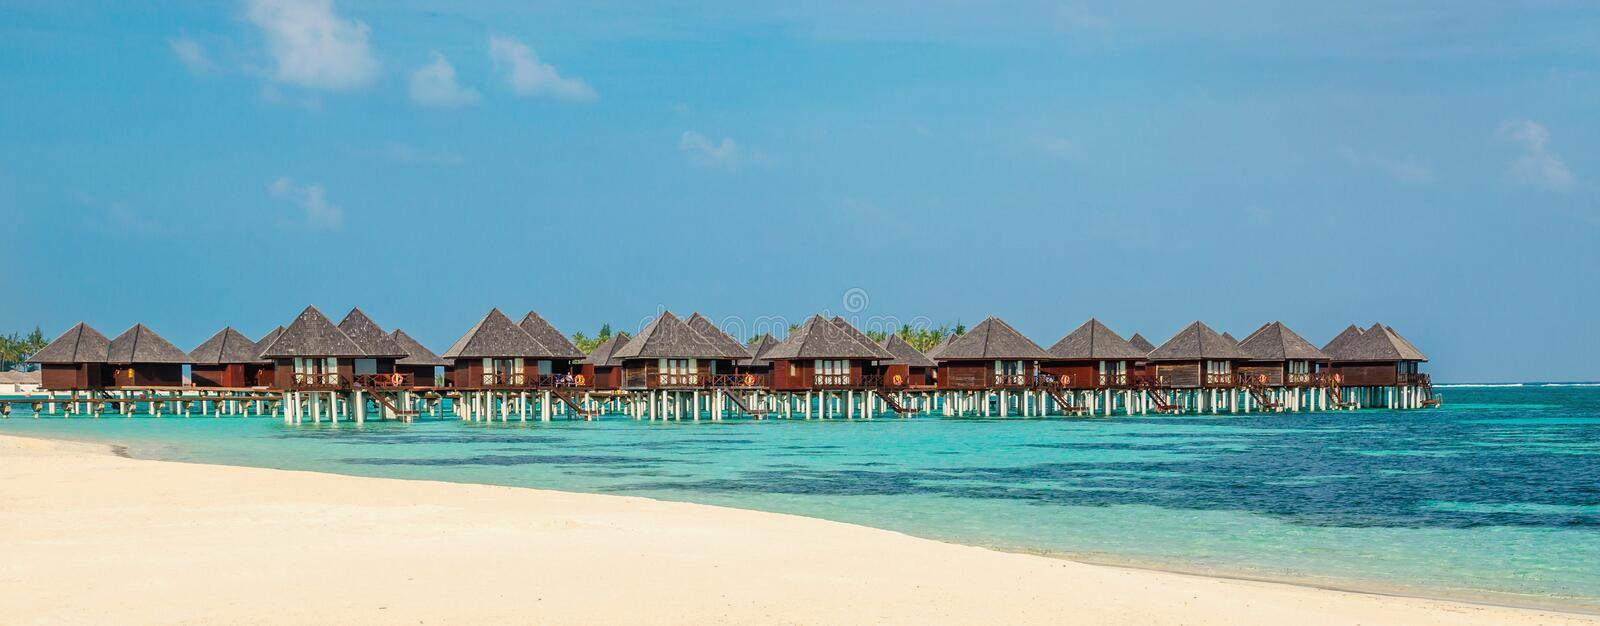 Over water bungalows on a tropical island, Maldives royalty free stock photography